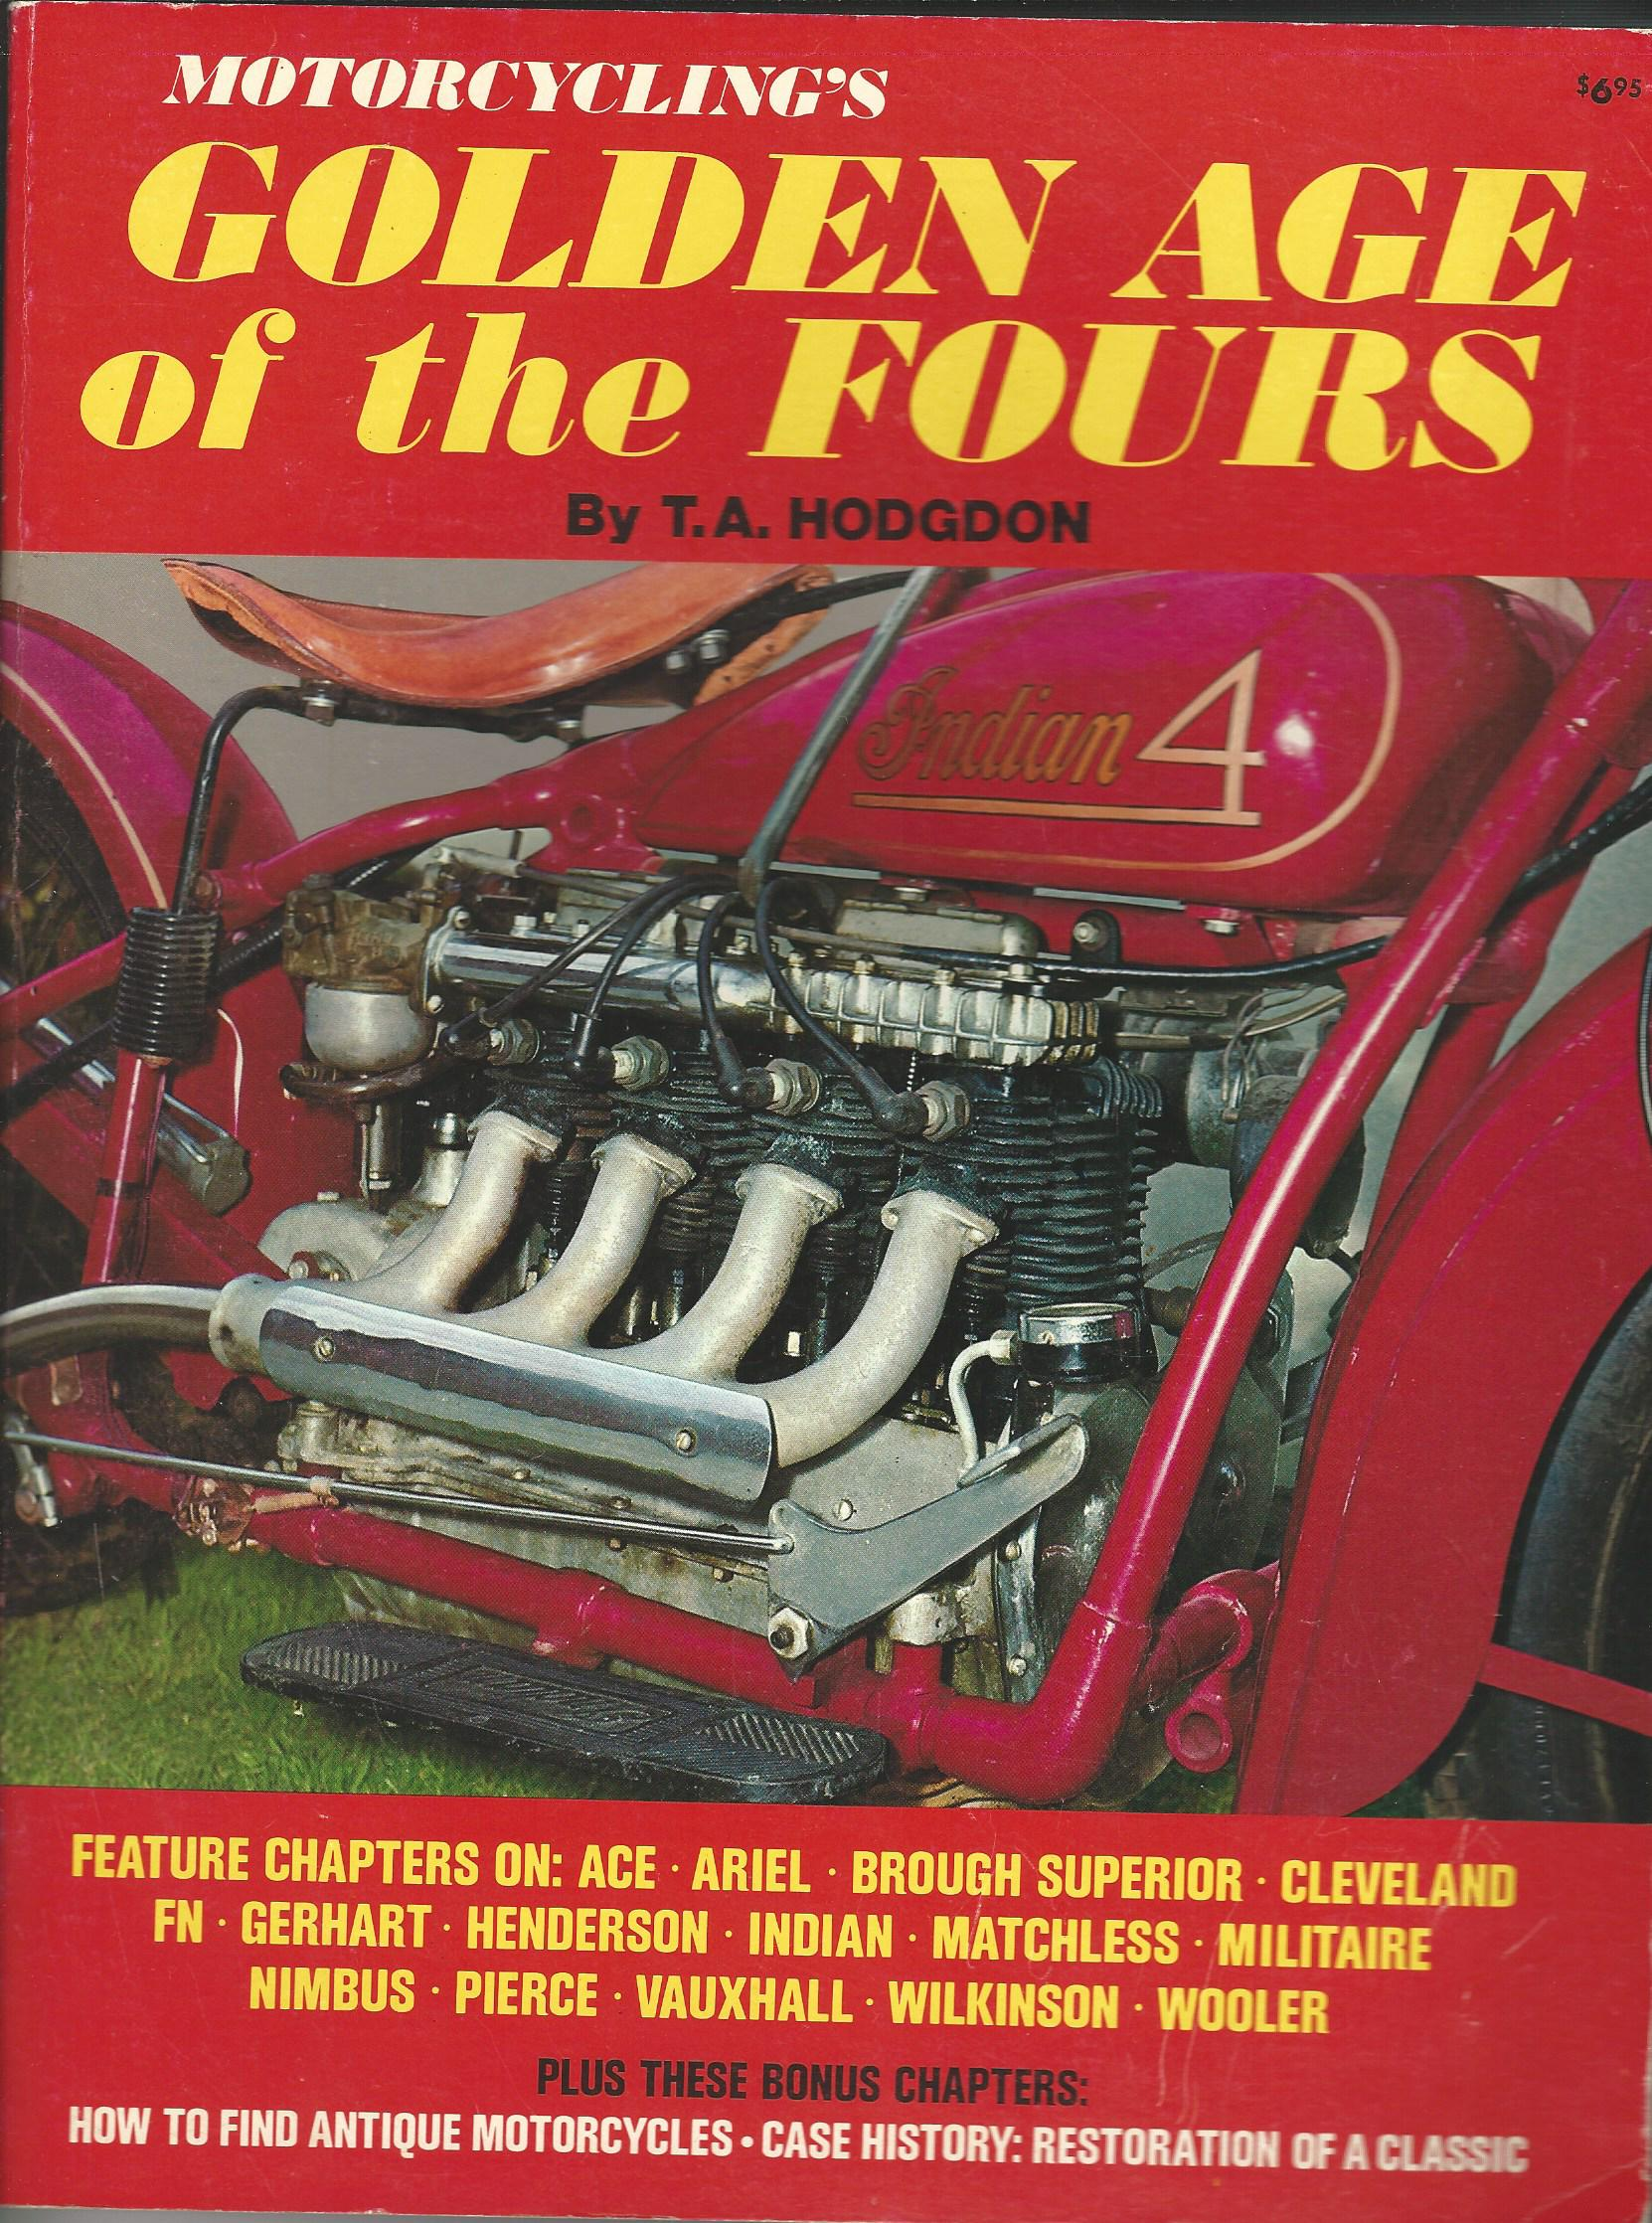 Image for Motorcycle's Golden Age of the Fours.